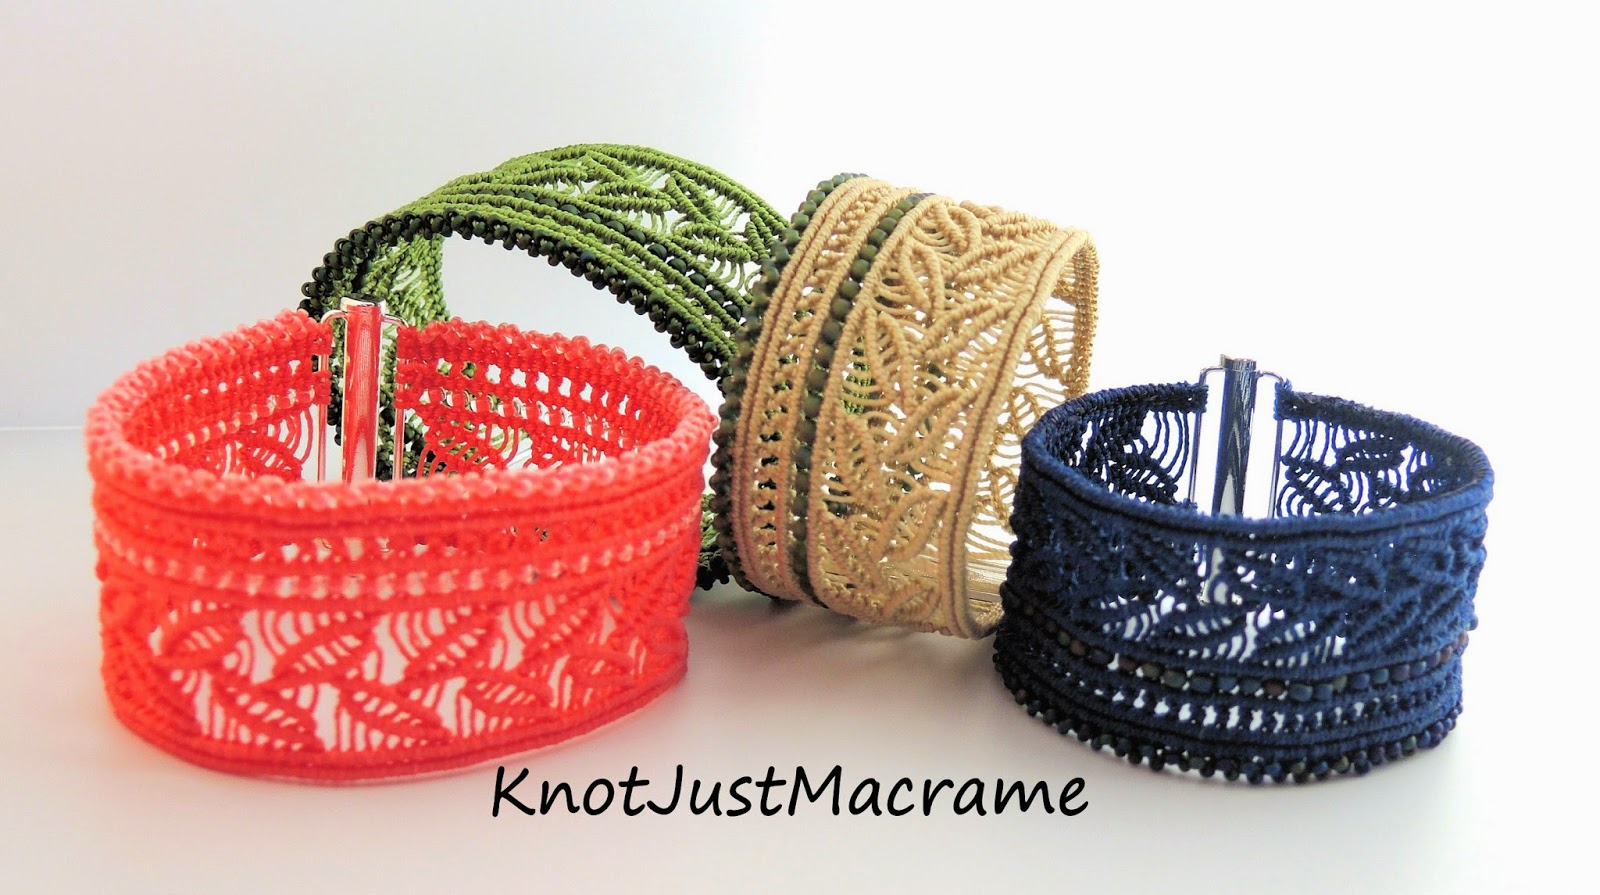 Colorful micro macrame cuff design for new class by Sherri Stokey.